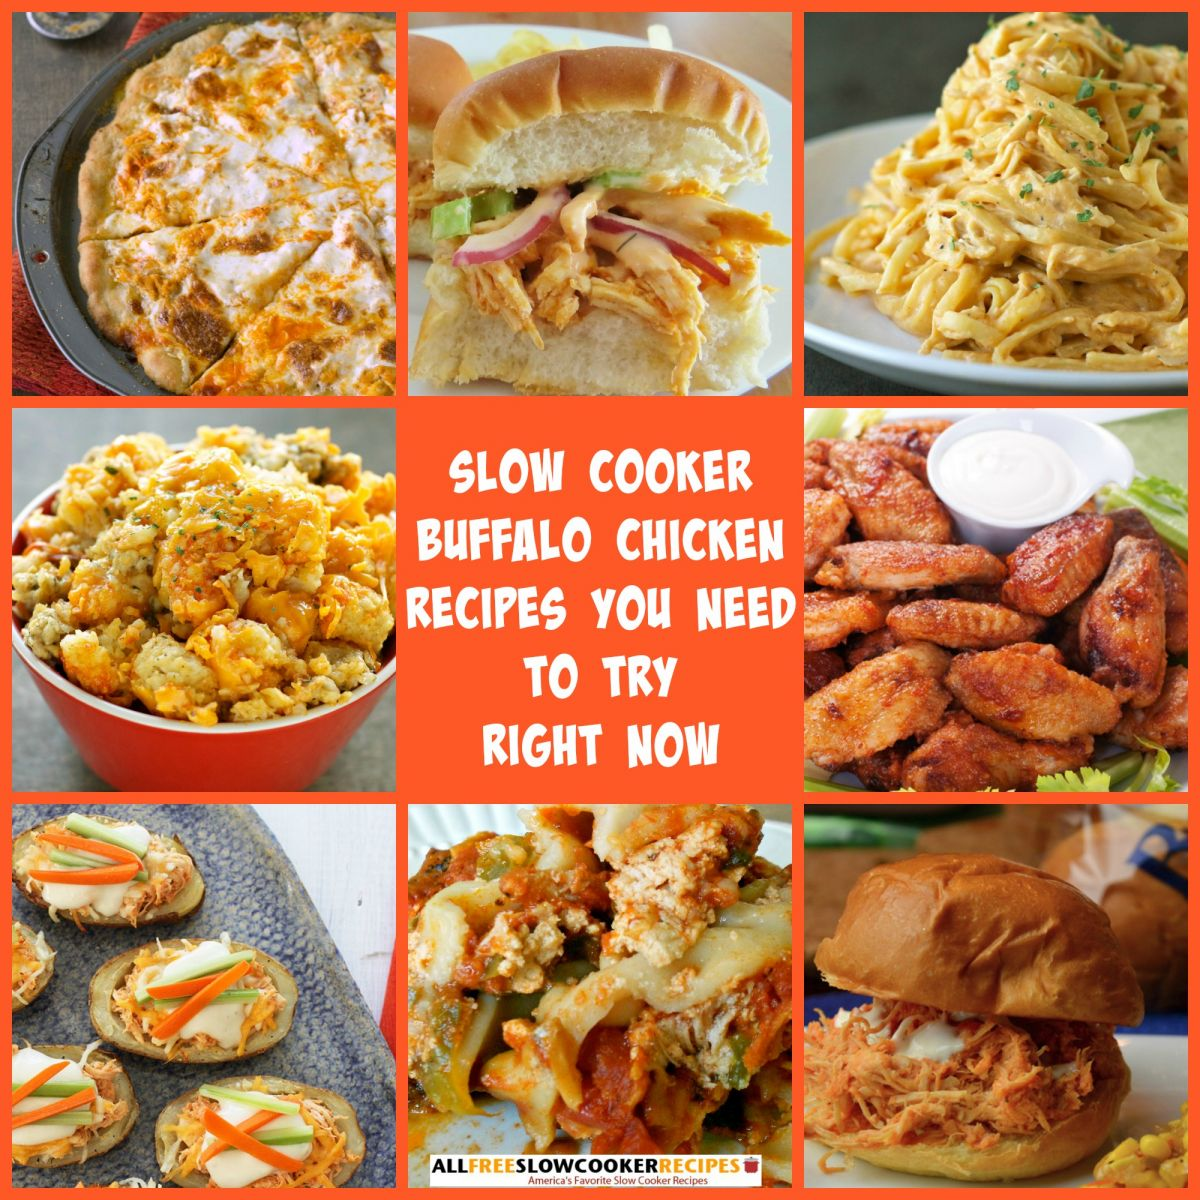 Slow Cooker Buffalo Chicken Recipes